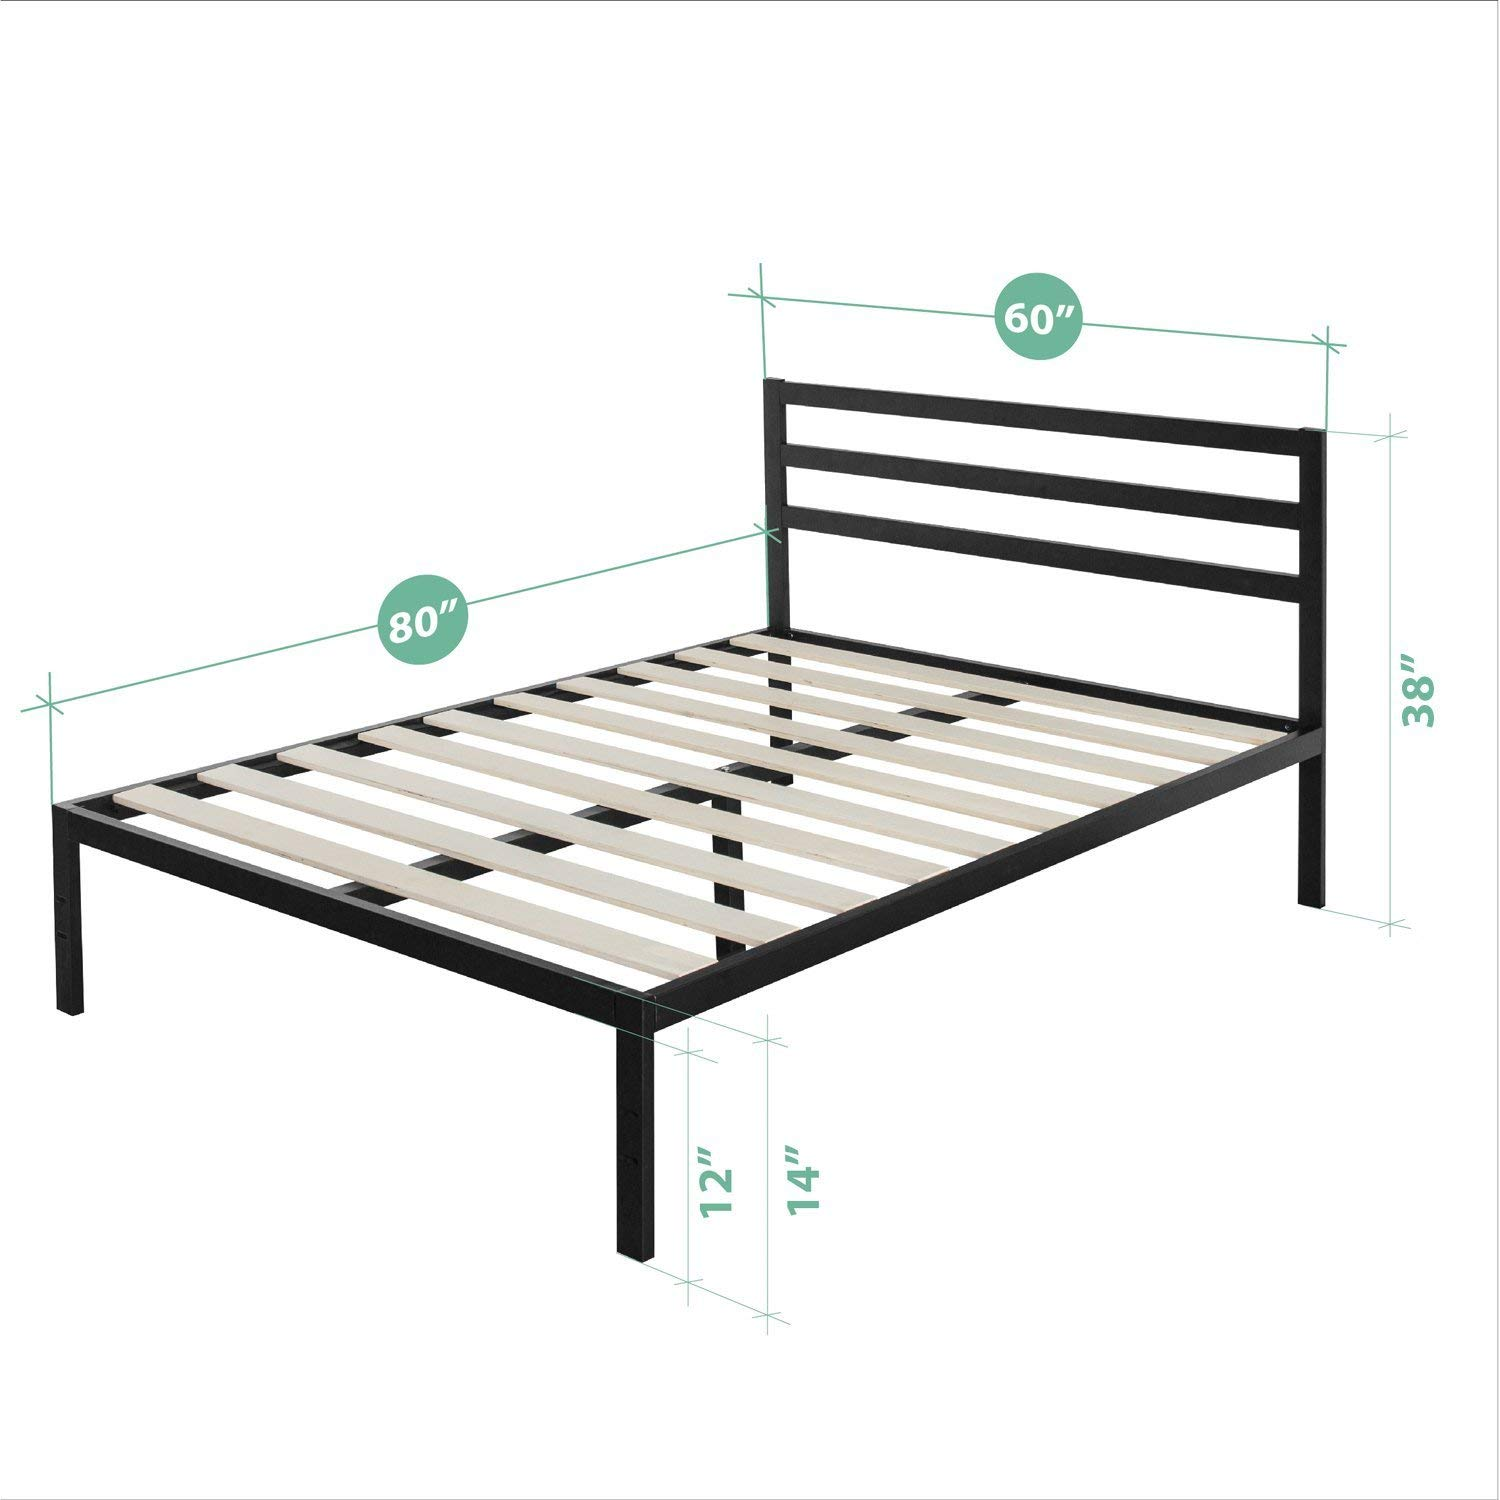 Features of the Platform bed frame